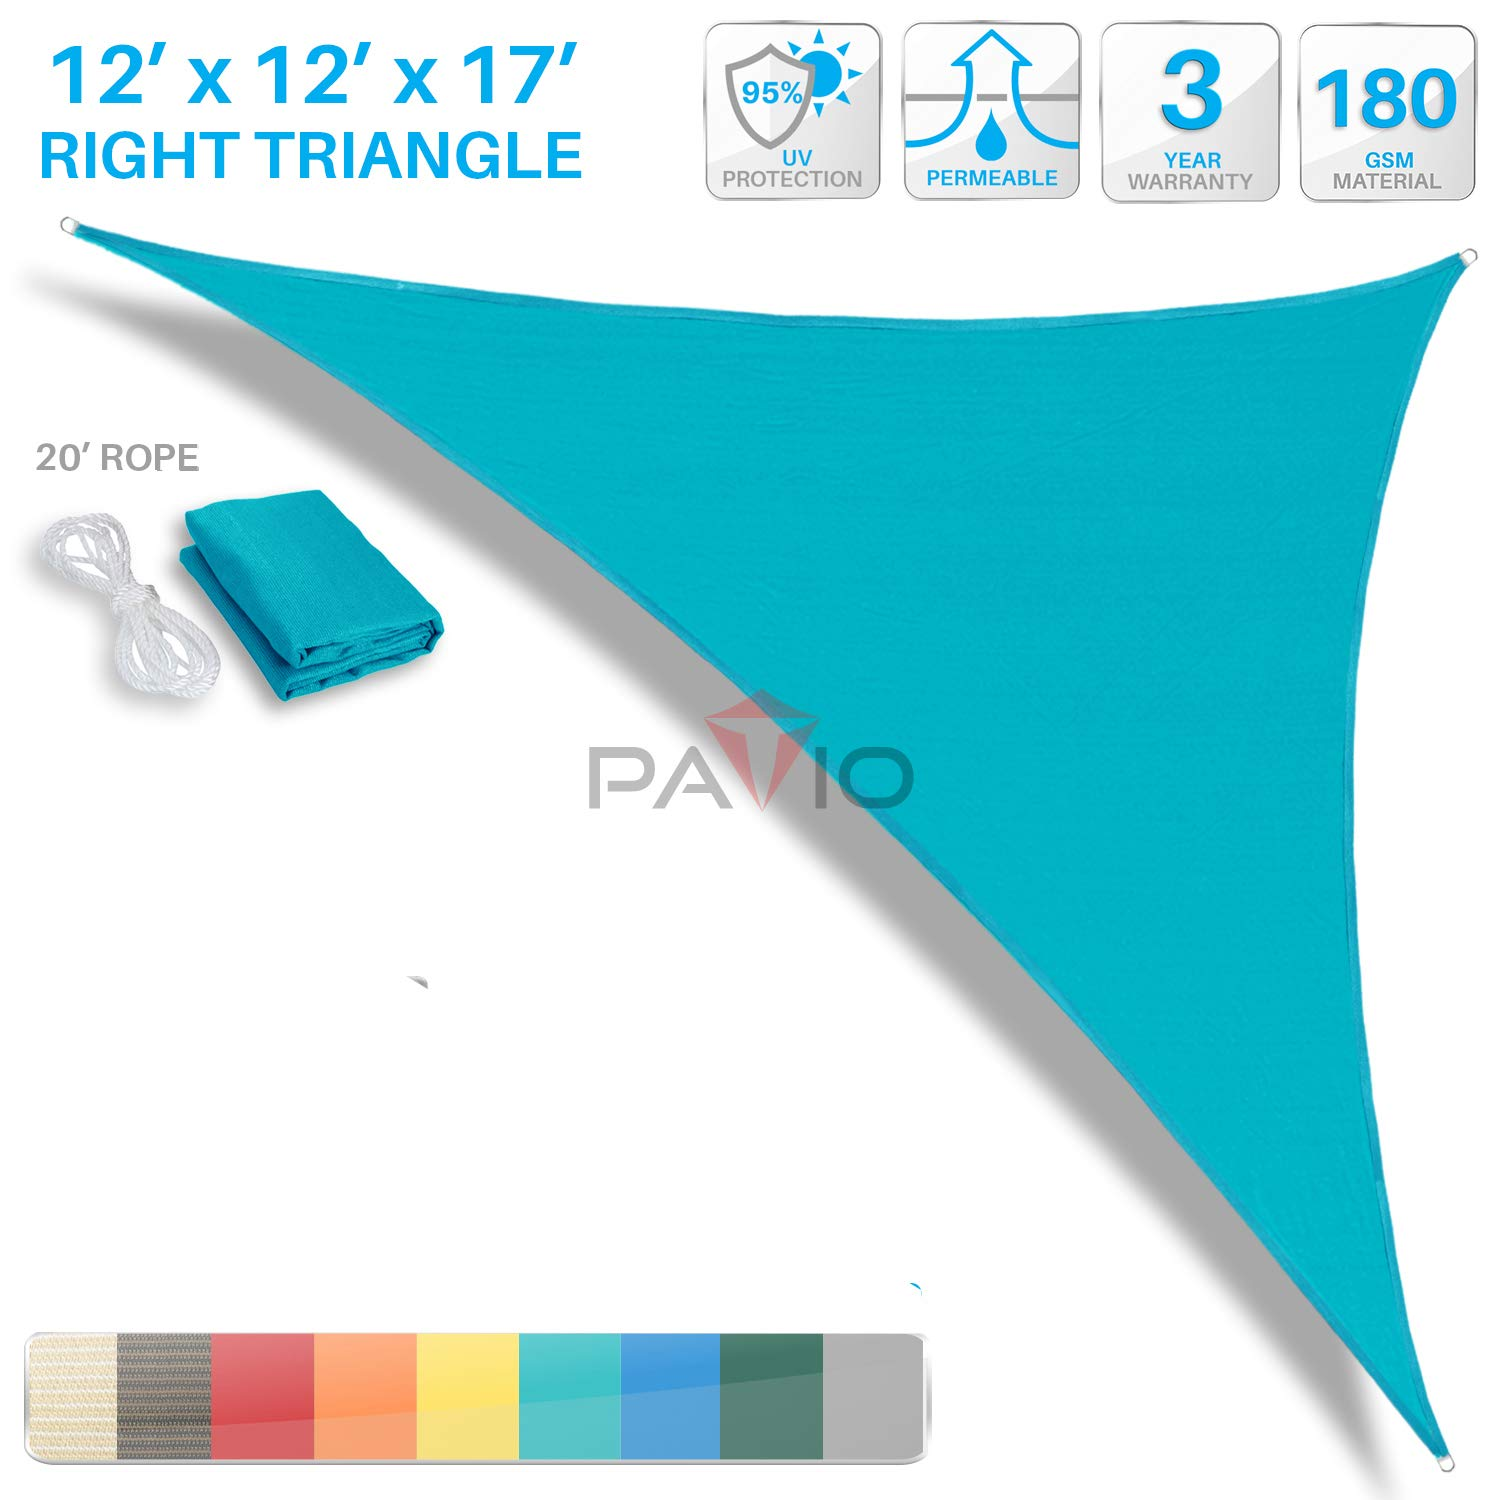 Patio Paradise 12' x 12' x 17' Turquoise Green Sun Shade Sail Right Triangle Canopy - Permeable UV Block Fabric Durable Outdoor - Customized Available